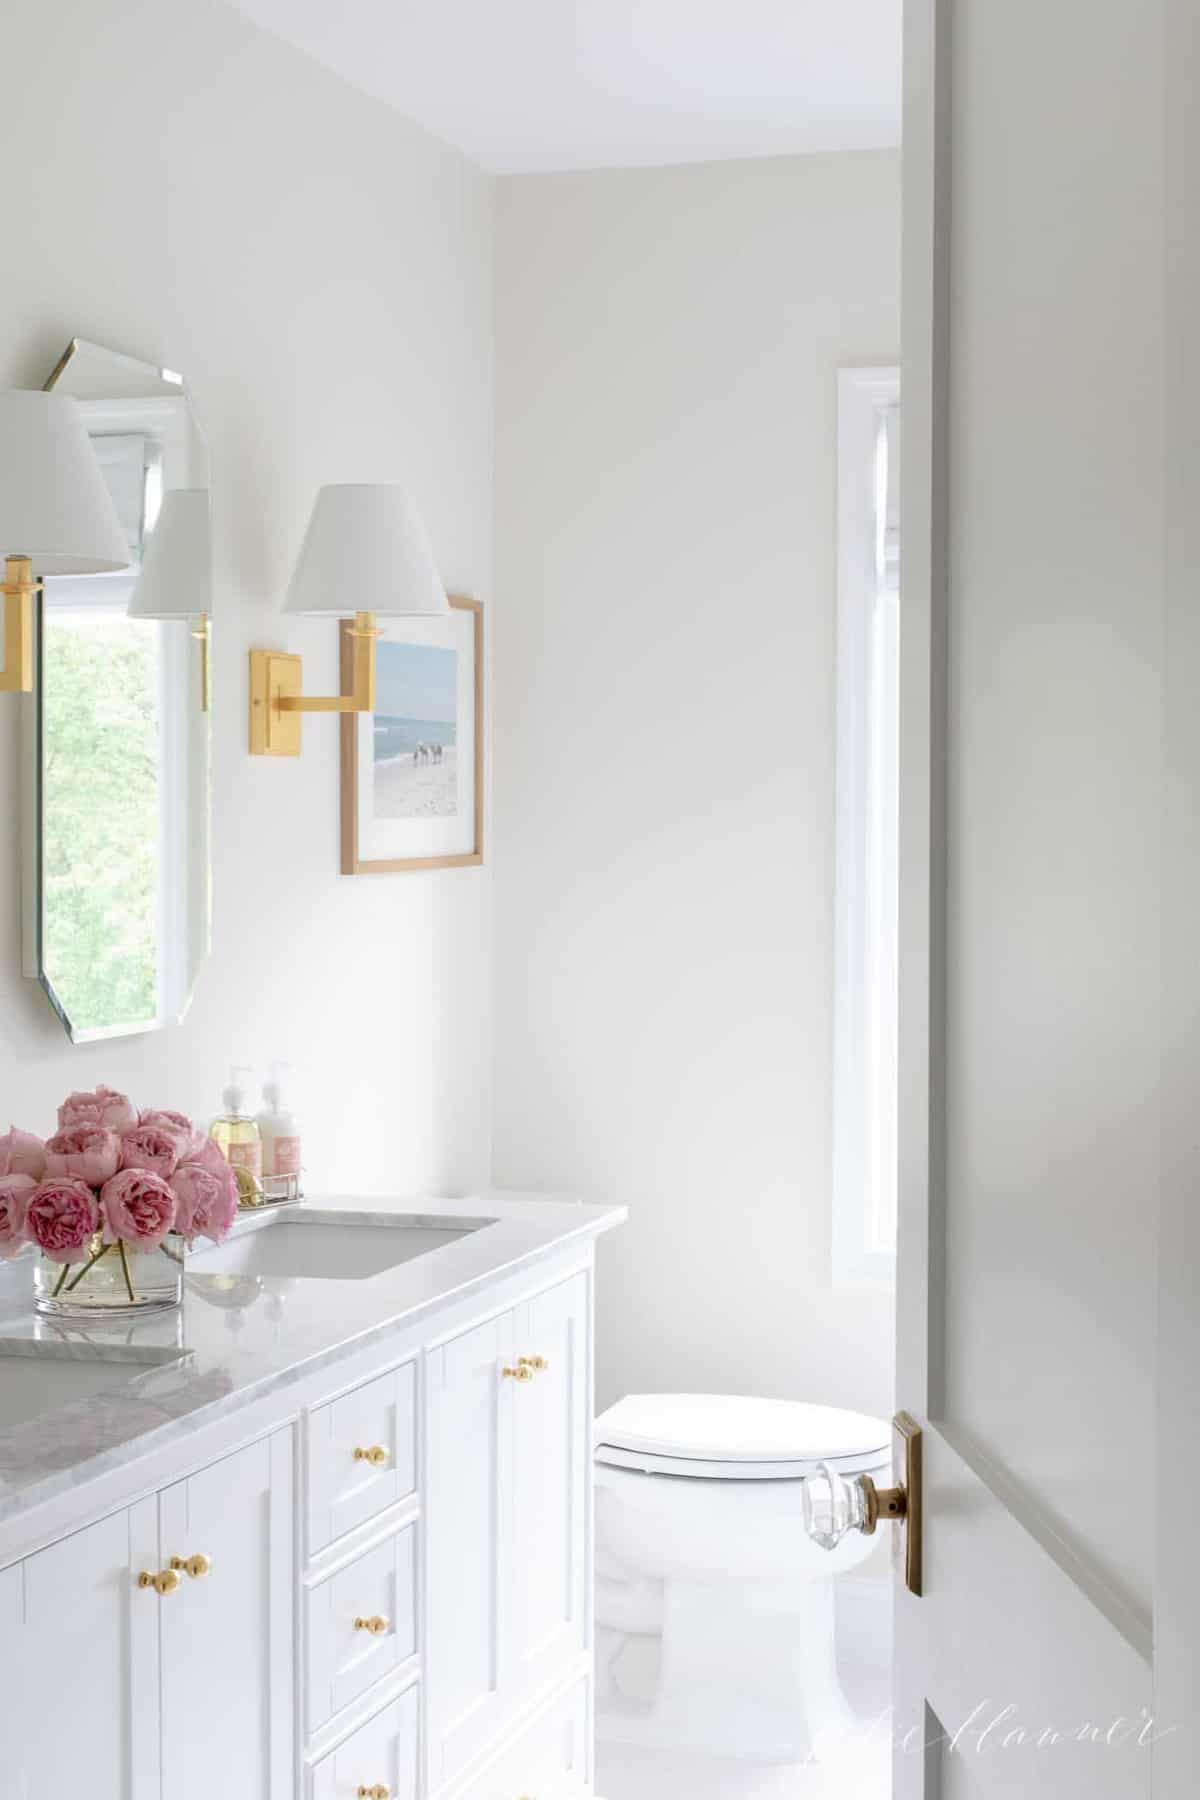 A white bathroom remodel to add home investment value.